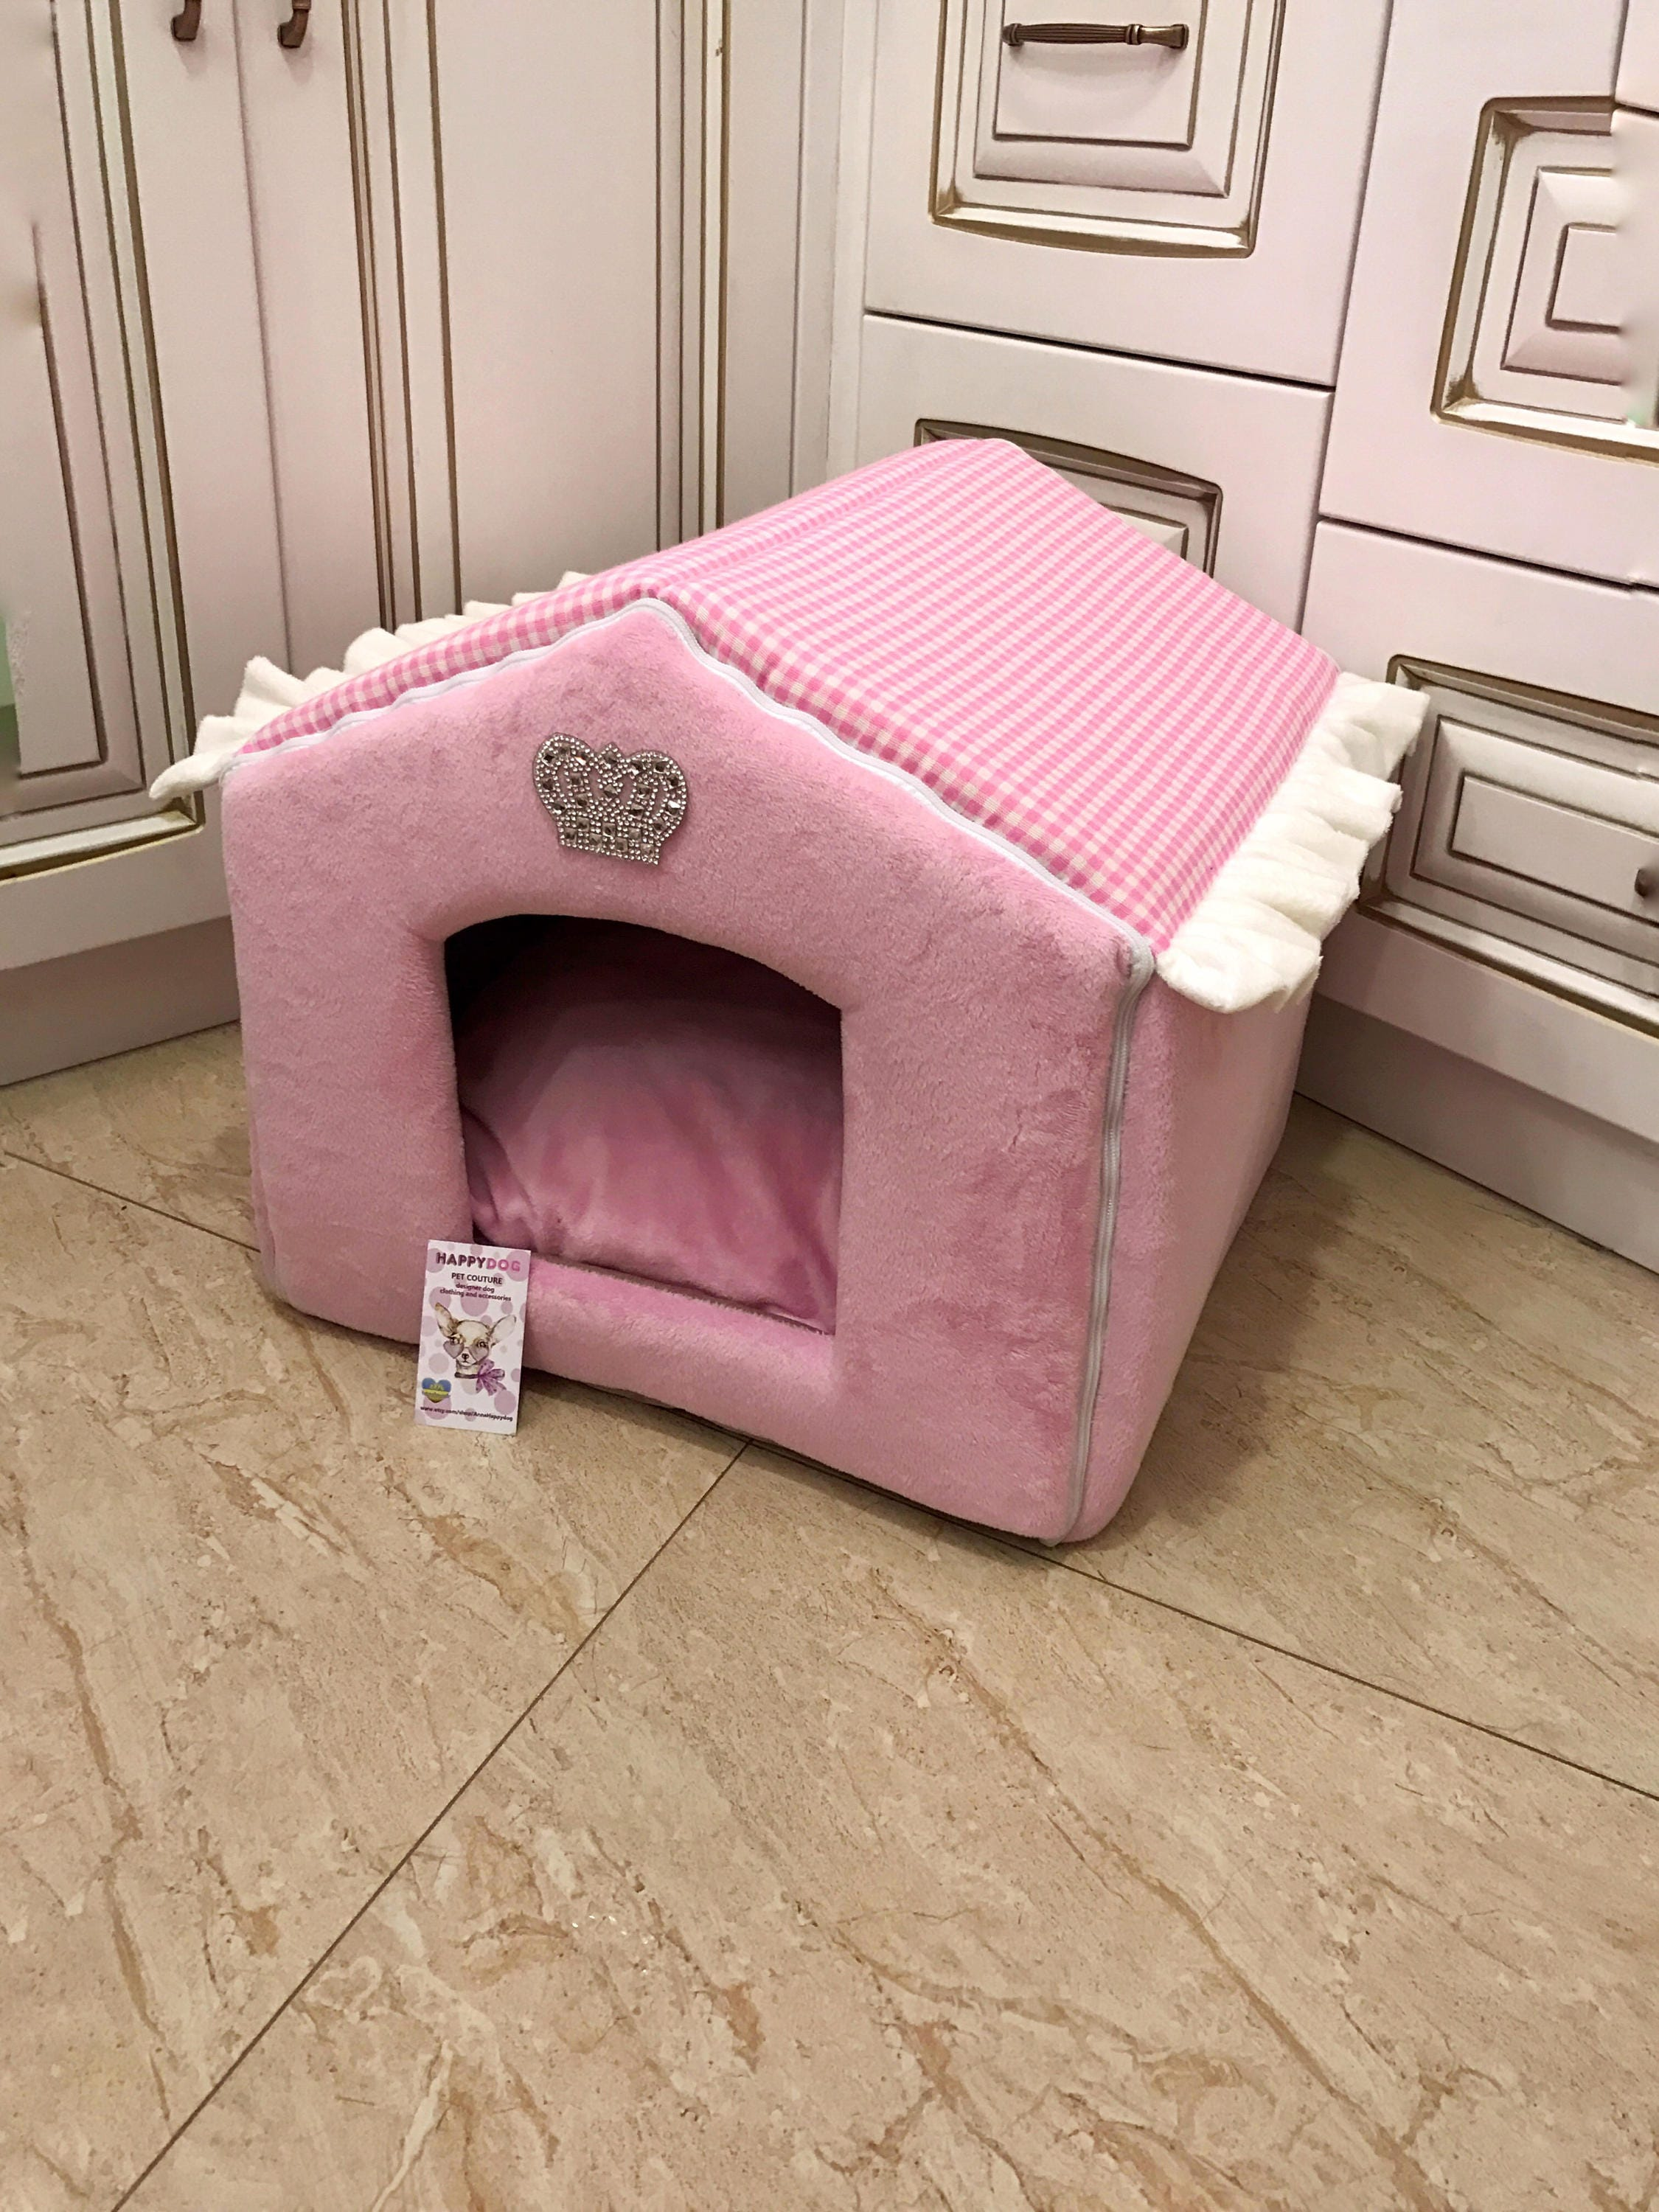 Dog crib for sale philippines - Pink House For Princess Dog Designer Pet House With Crown Sparklings Princess Dog Bed Cat Bed Custom Made Dog Bed Puppy House S M Dog